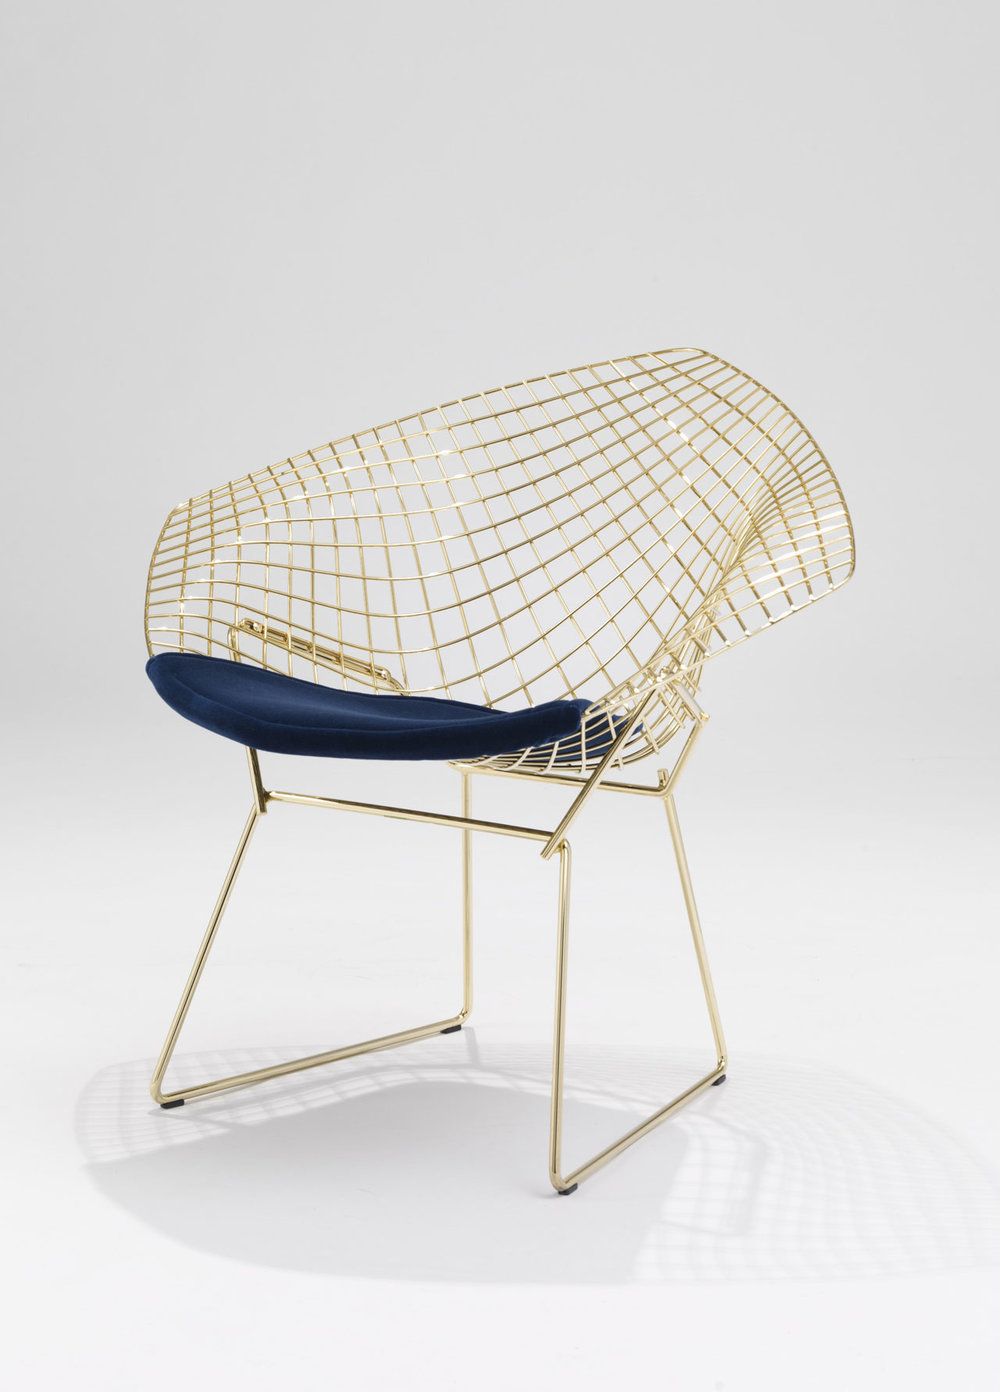 0a_diamond_chair-gold-by-harry-bertoia_0216_mdw16_yatzer.jpg